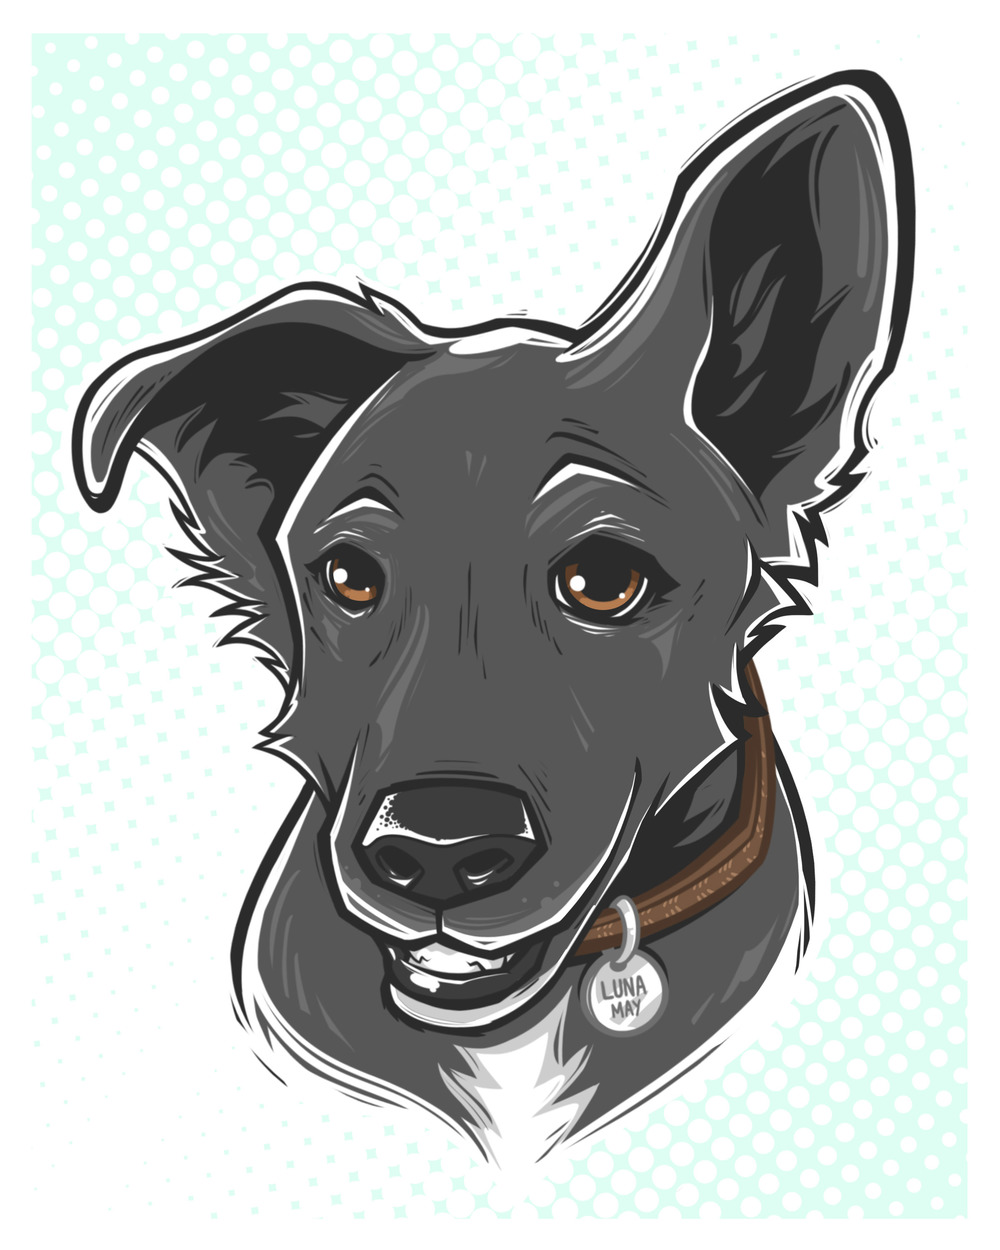 comique pet portrait - Luna May